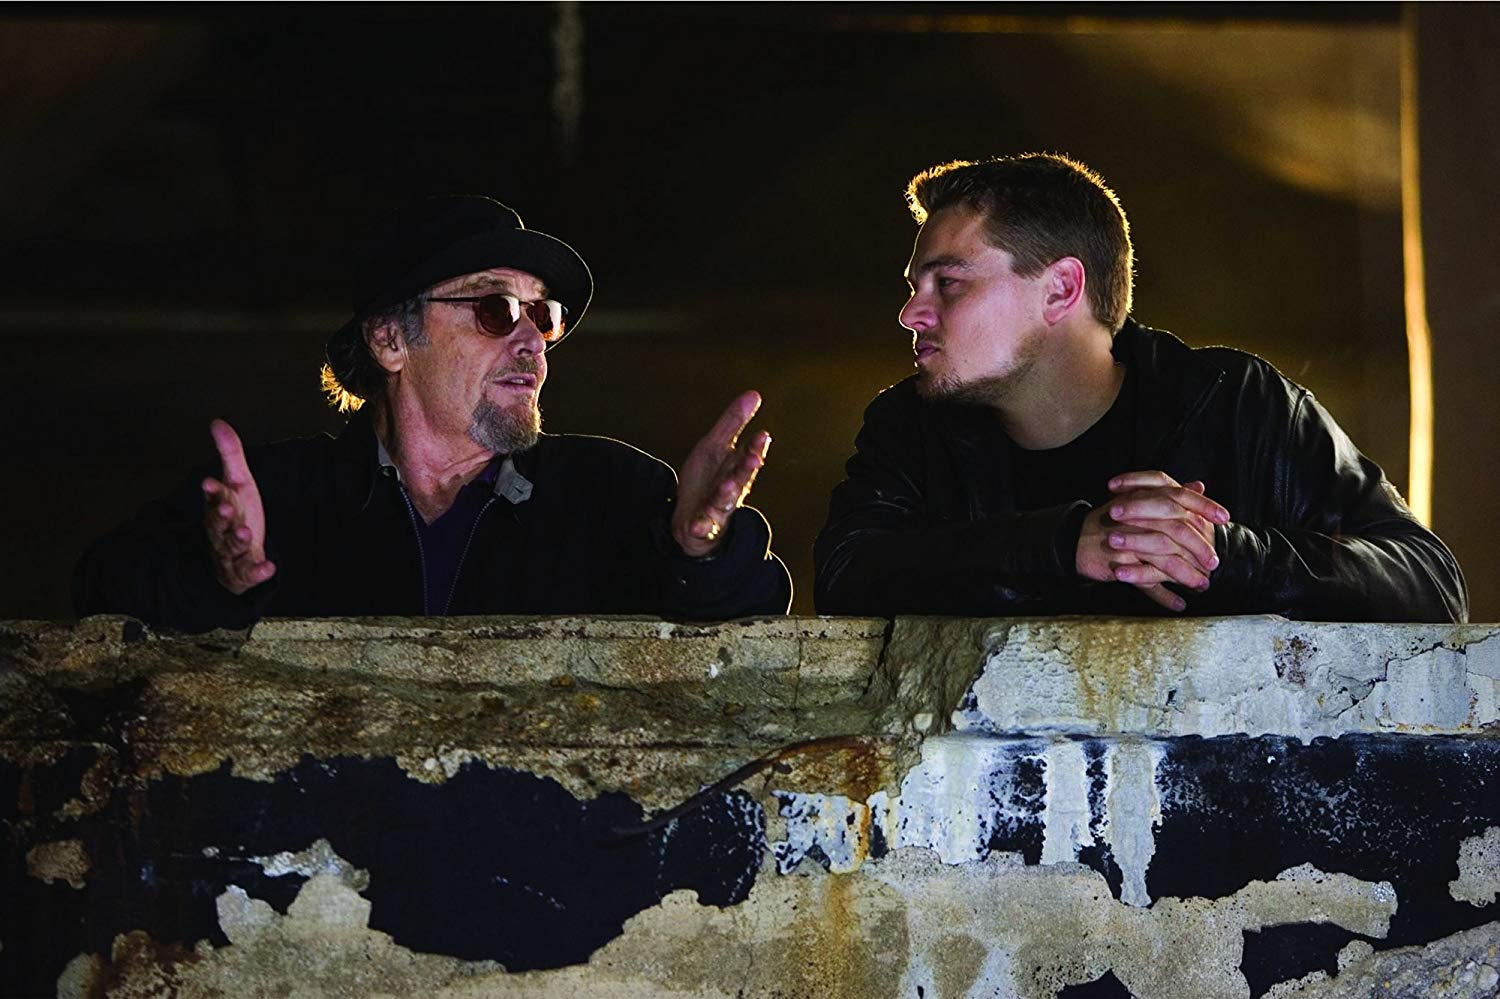 The Departed A Martin Scorsese Masterpiece Solzy At The Movies Леона́рдо вильге́льм ди ка́прио (англ. the departed a martin scorsese